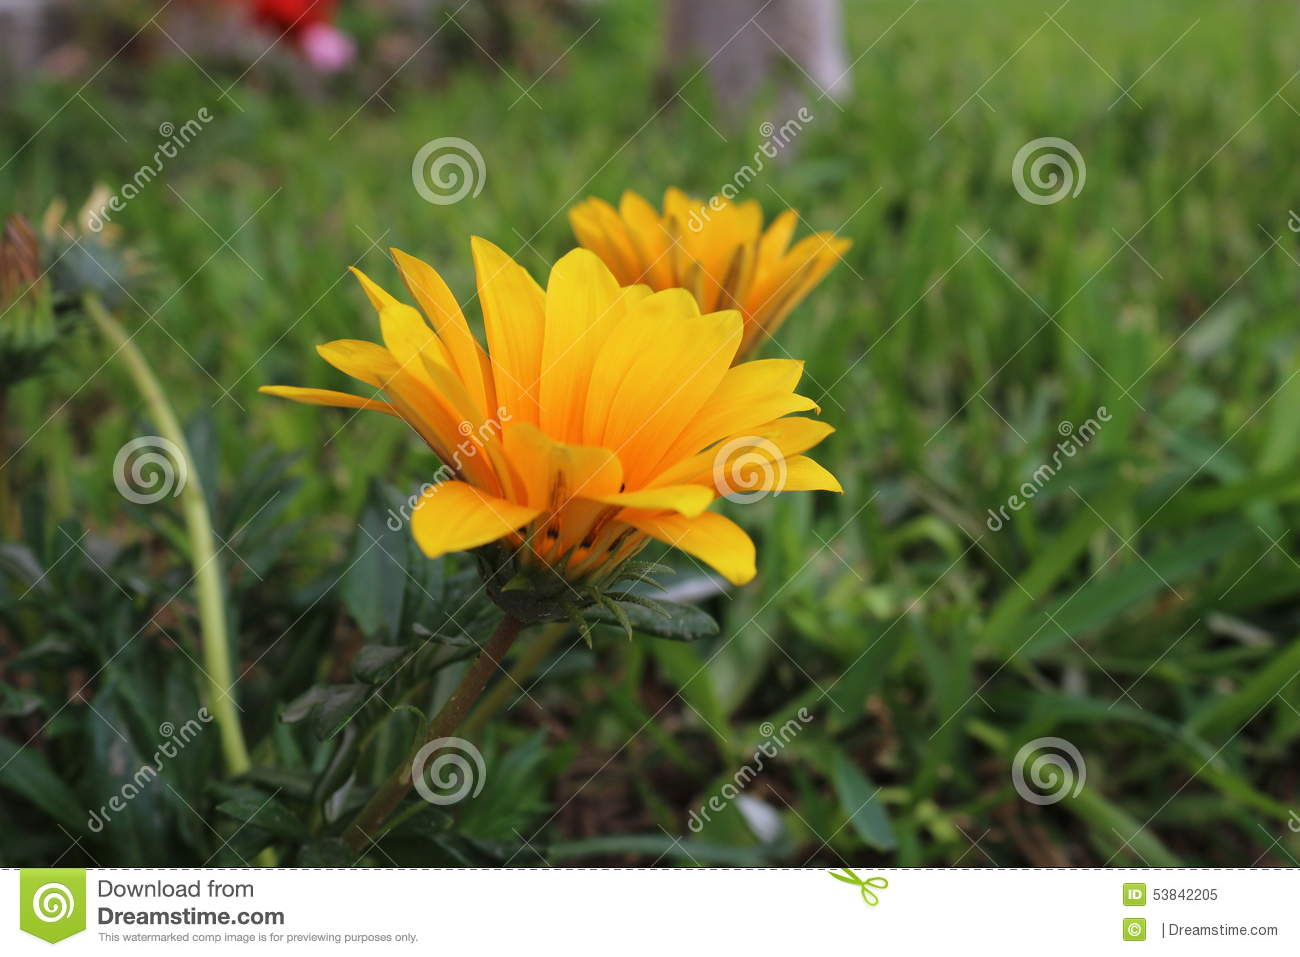 Most beautiful yellow daisy flower stock image image of plant most beautiful yellow daisy flower izmirmasajfo